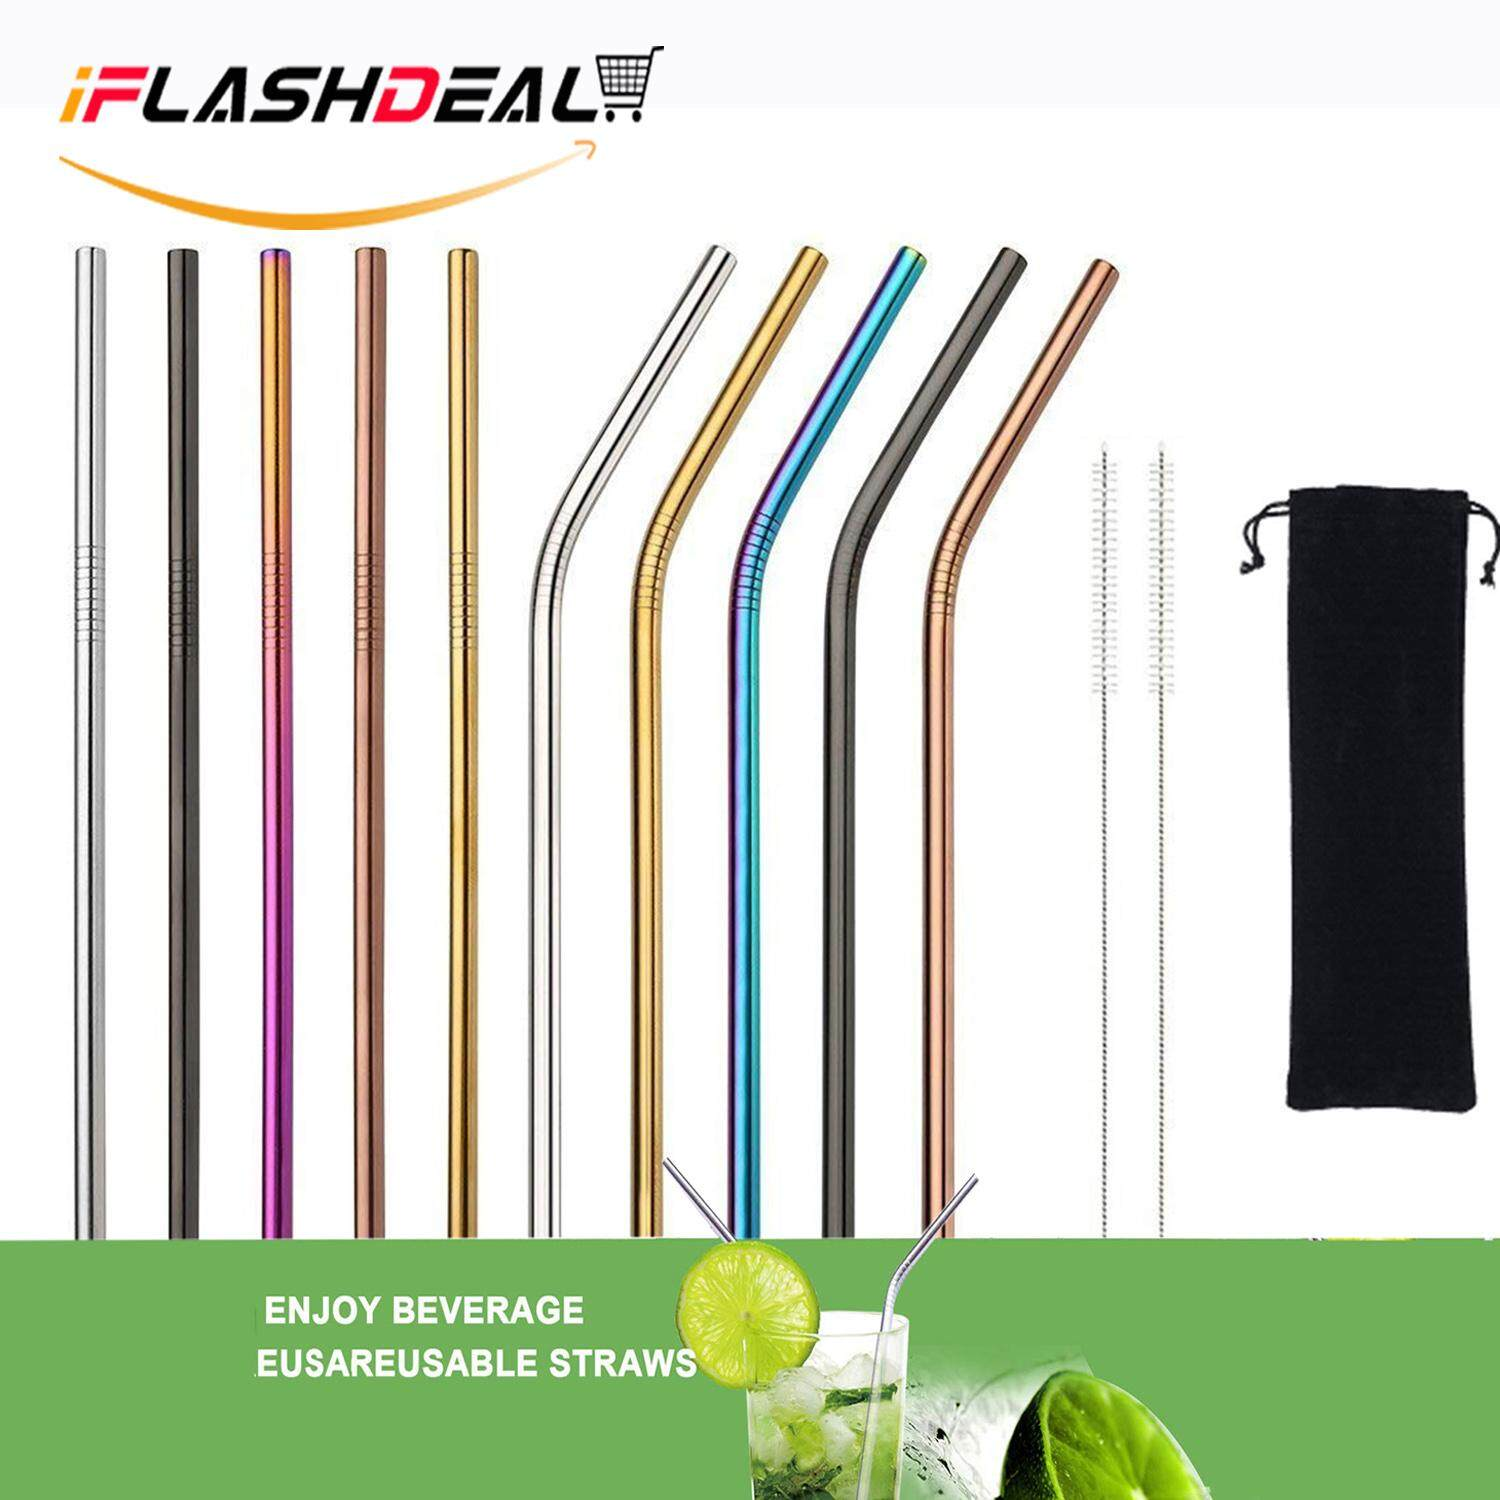 Iflashdeal Stainless Steel Straws Drinking Metal Straws Ultra Long For Tumblers Rumblers Cold Beverage Set Of 10 (5 Straight5 Bent2 Brushes) By Iflashdeal.